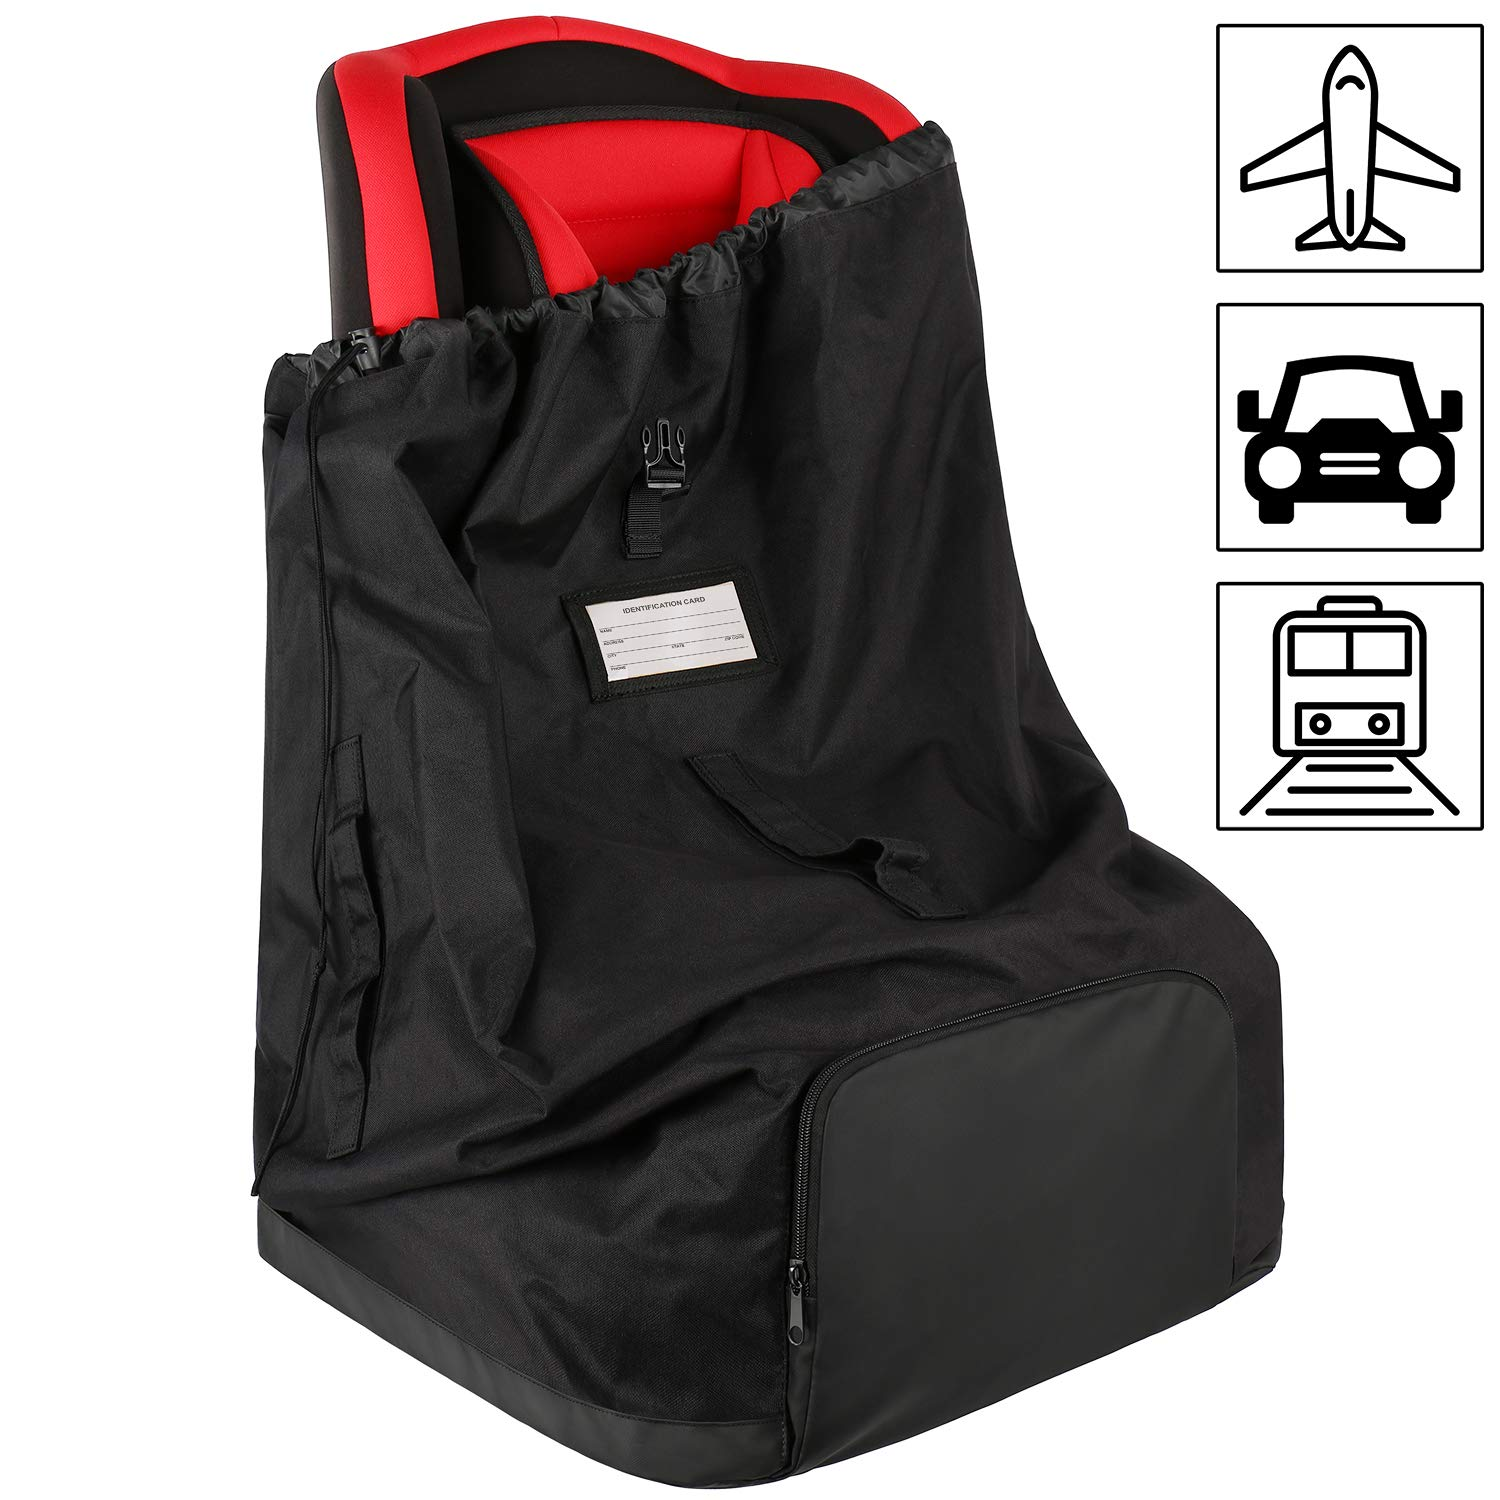 Car Seat Travel Bag, Baby Child Carseat Bags for Air Travel, Durable Ultimate Car Seat Carrier Backpack with Shoulder Straps, Convertible Large Travel Luggage Bag for Airport Gate Check, Black by Mancro